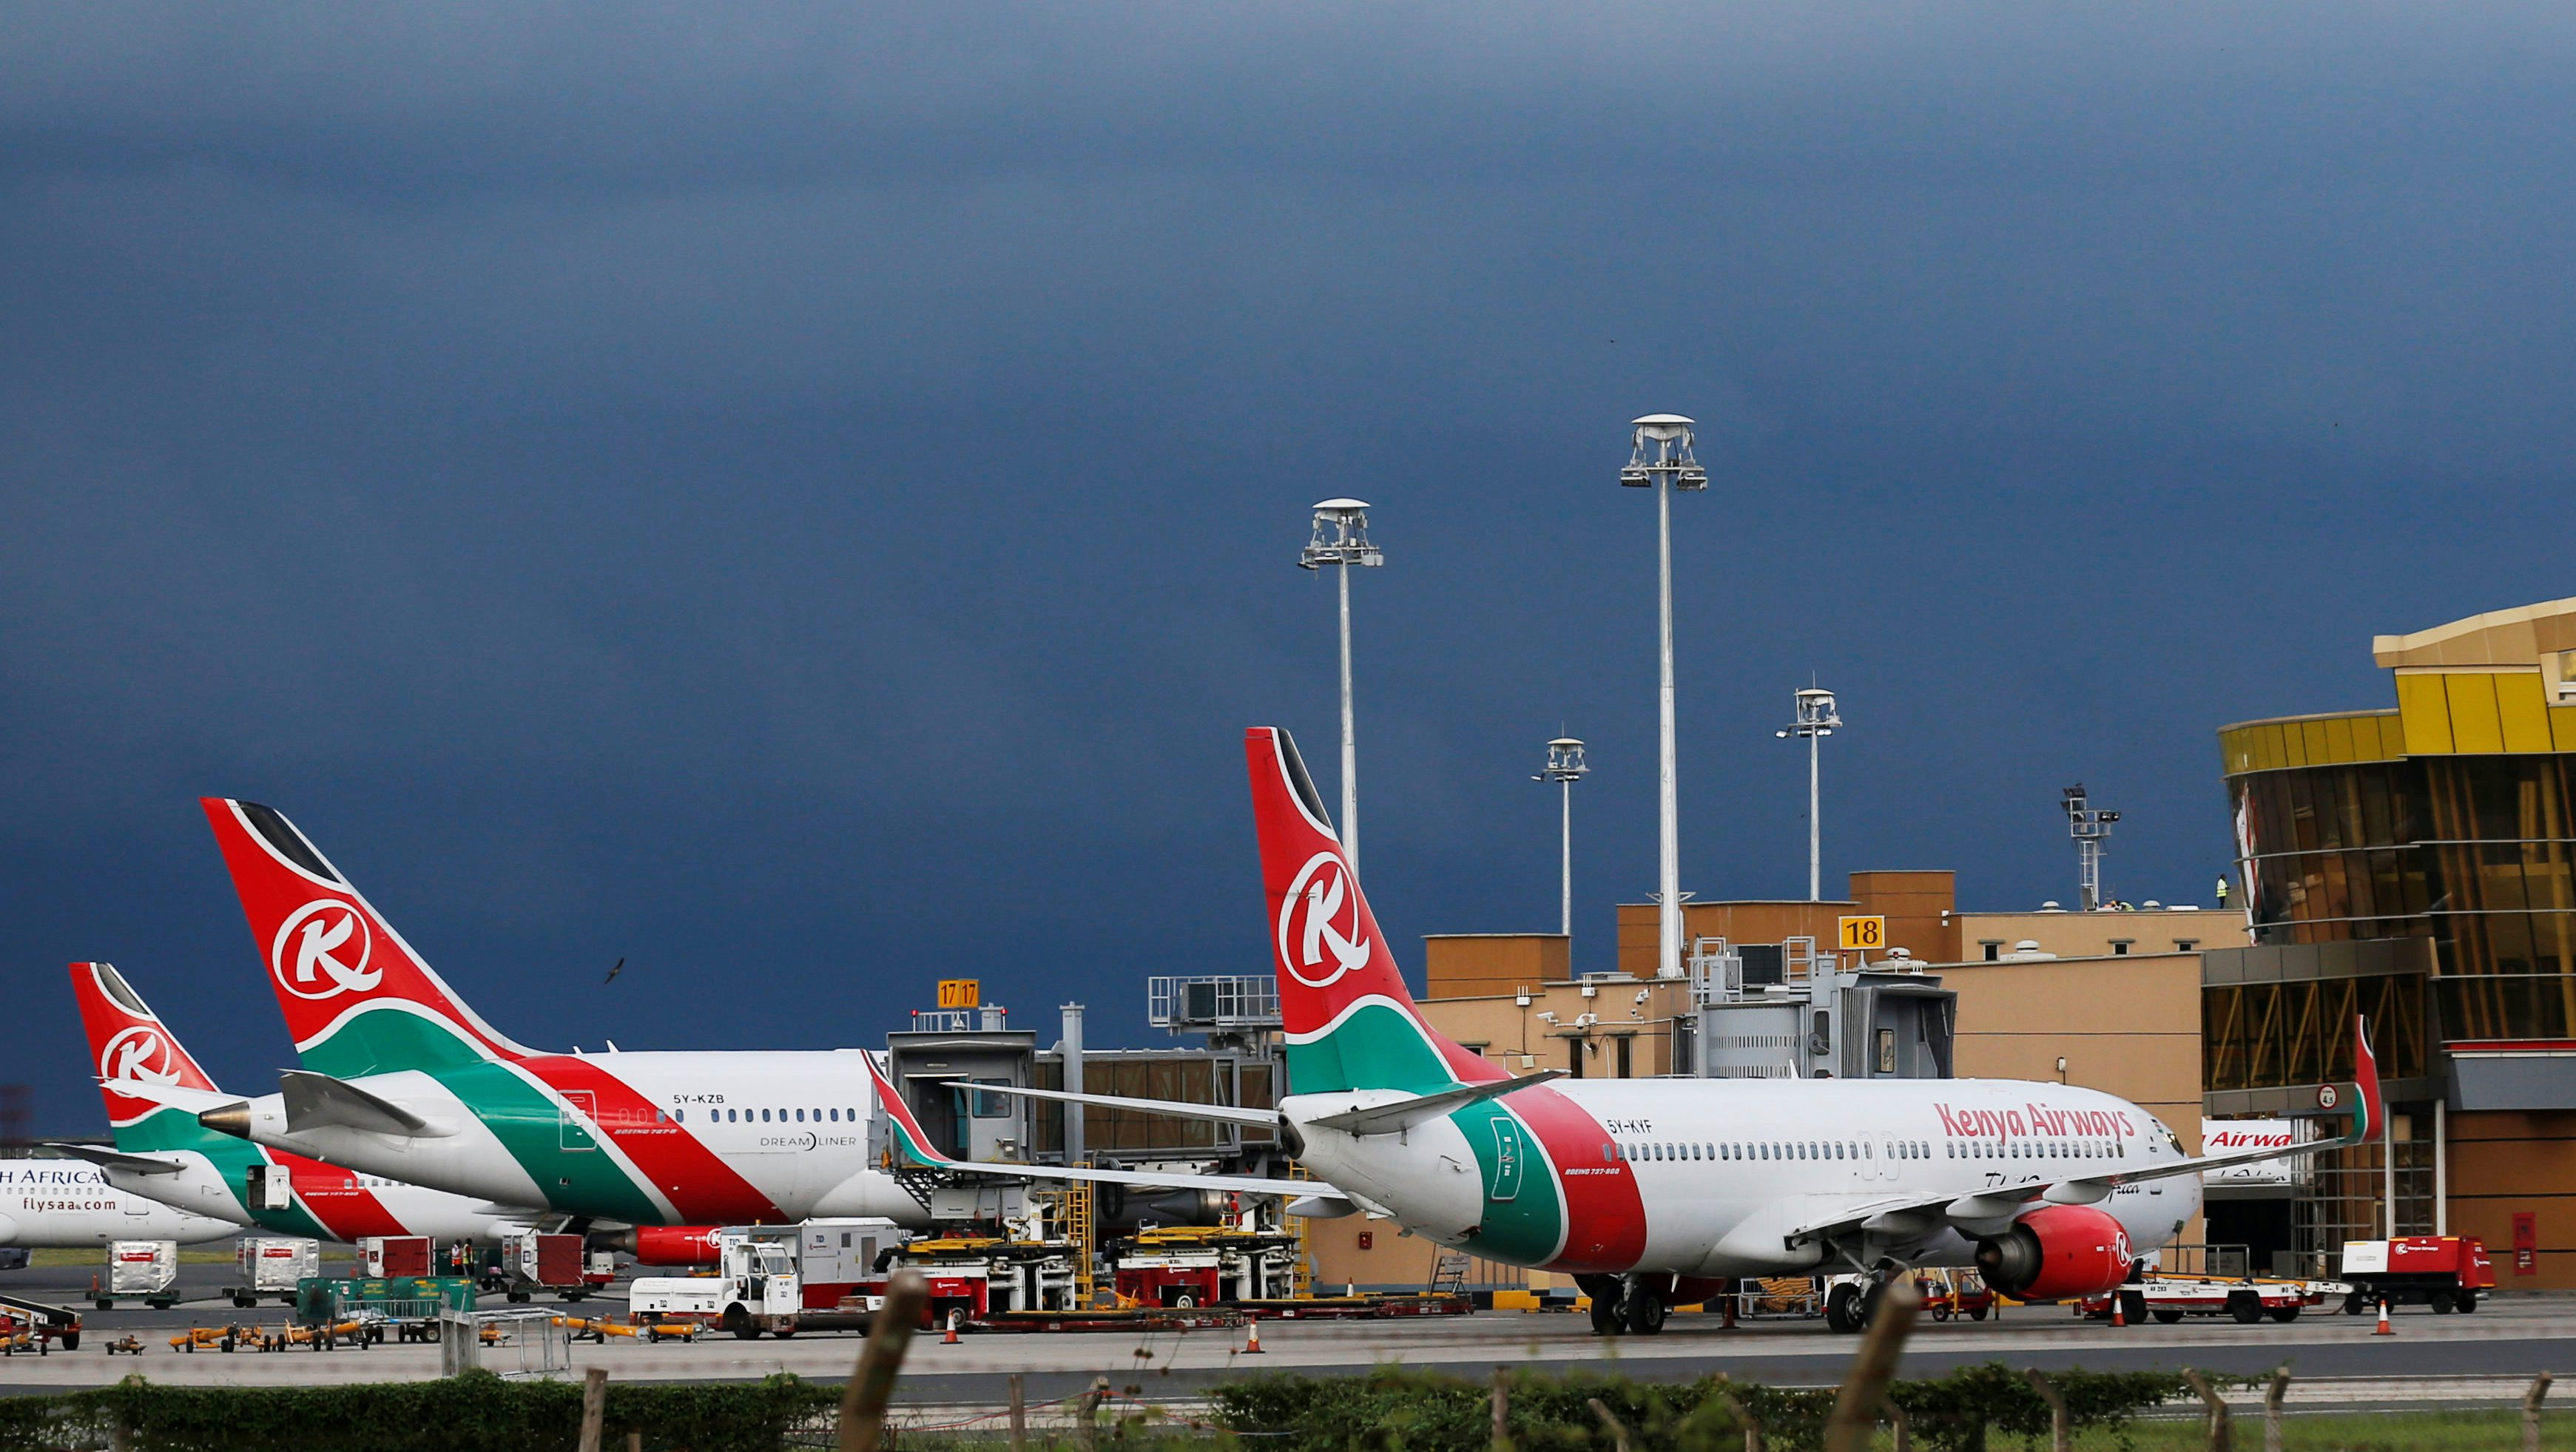 Kenya Airways planes are seen parked at the Jomo Kenyatta International airport near Kenya's capital Nairobi, April 28, 2016. Picture taken April 28, 2016.